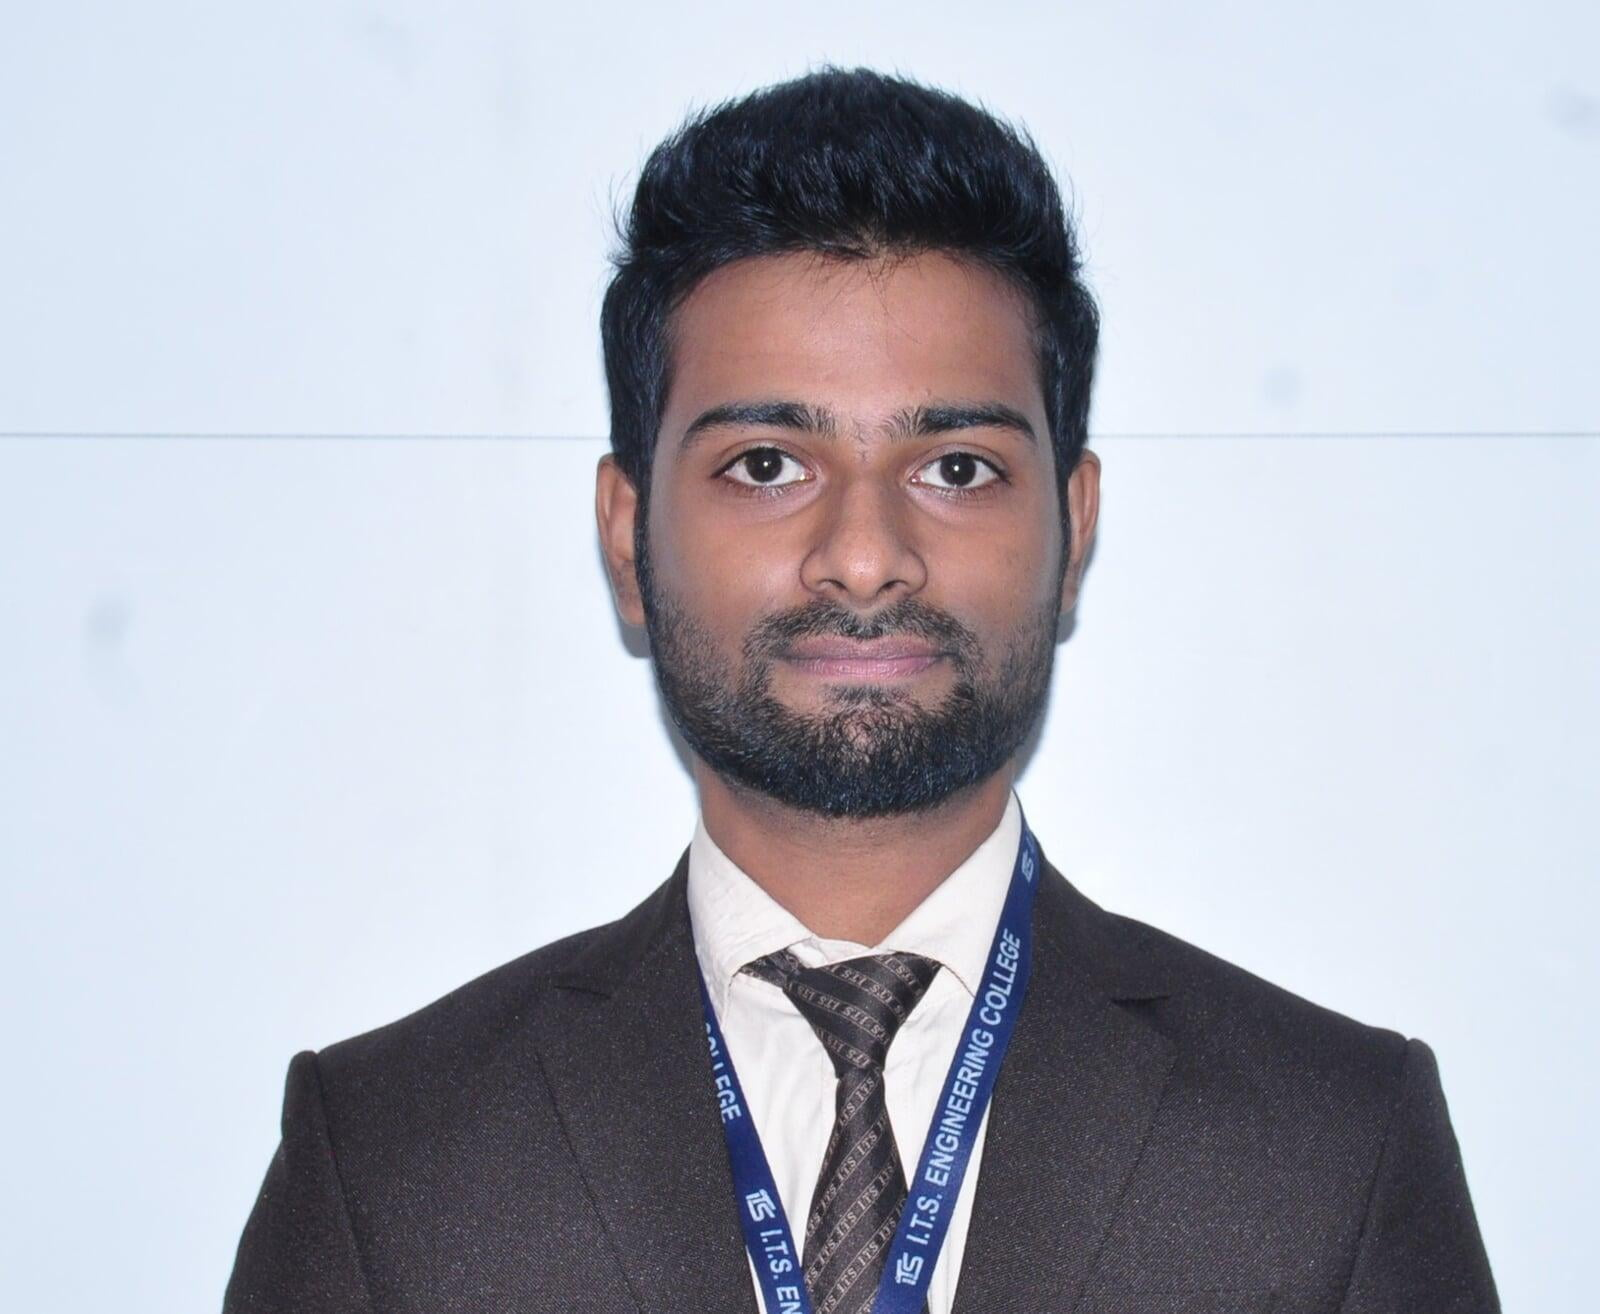 Md. Arshan Amin Student Placement Committee